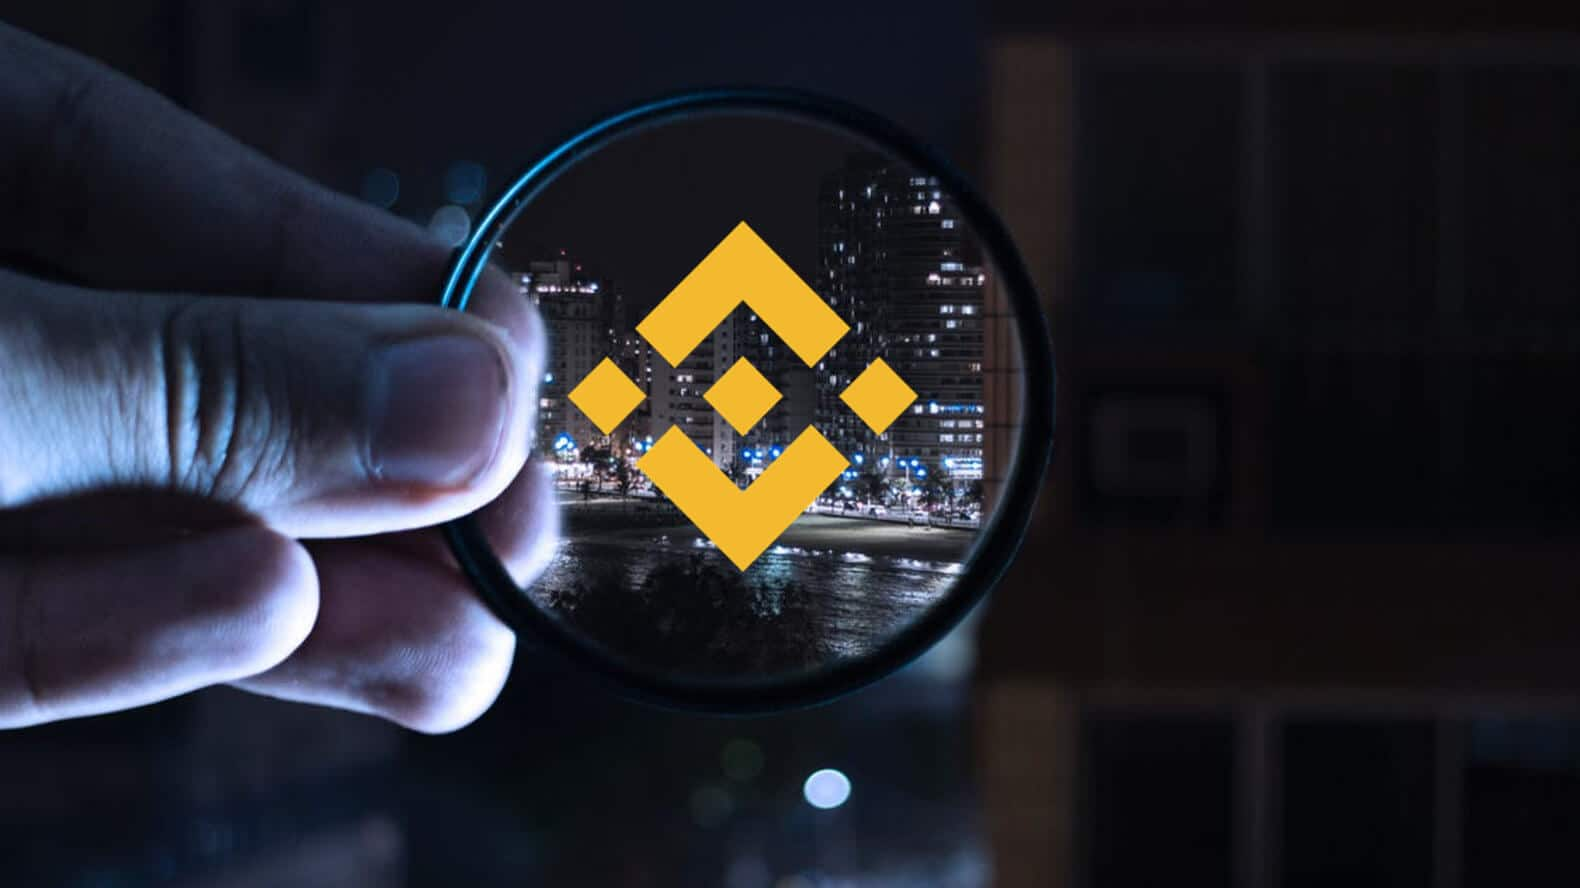 Binance CEO Says Futures Trading Platform To Be Launched Next Month